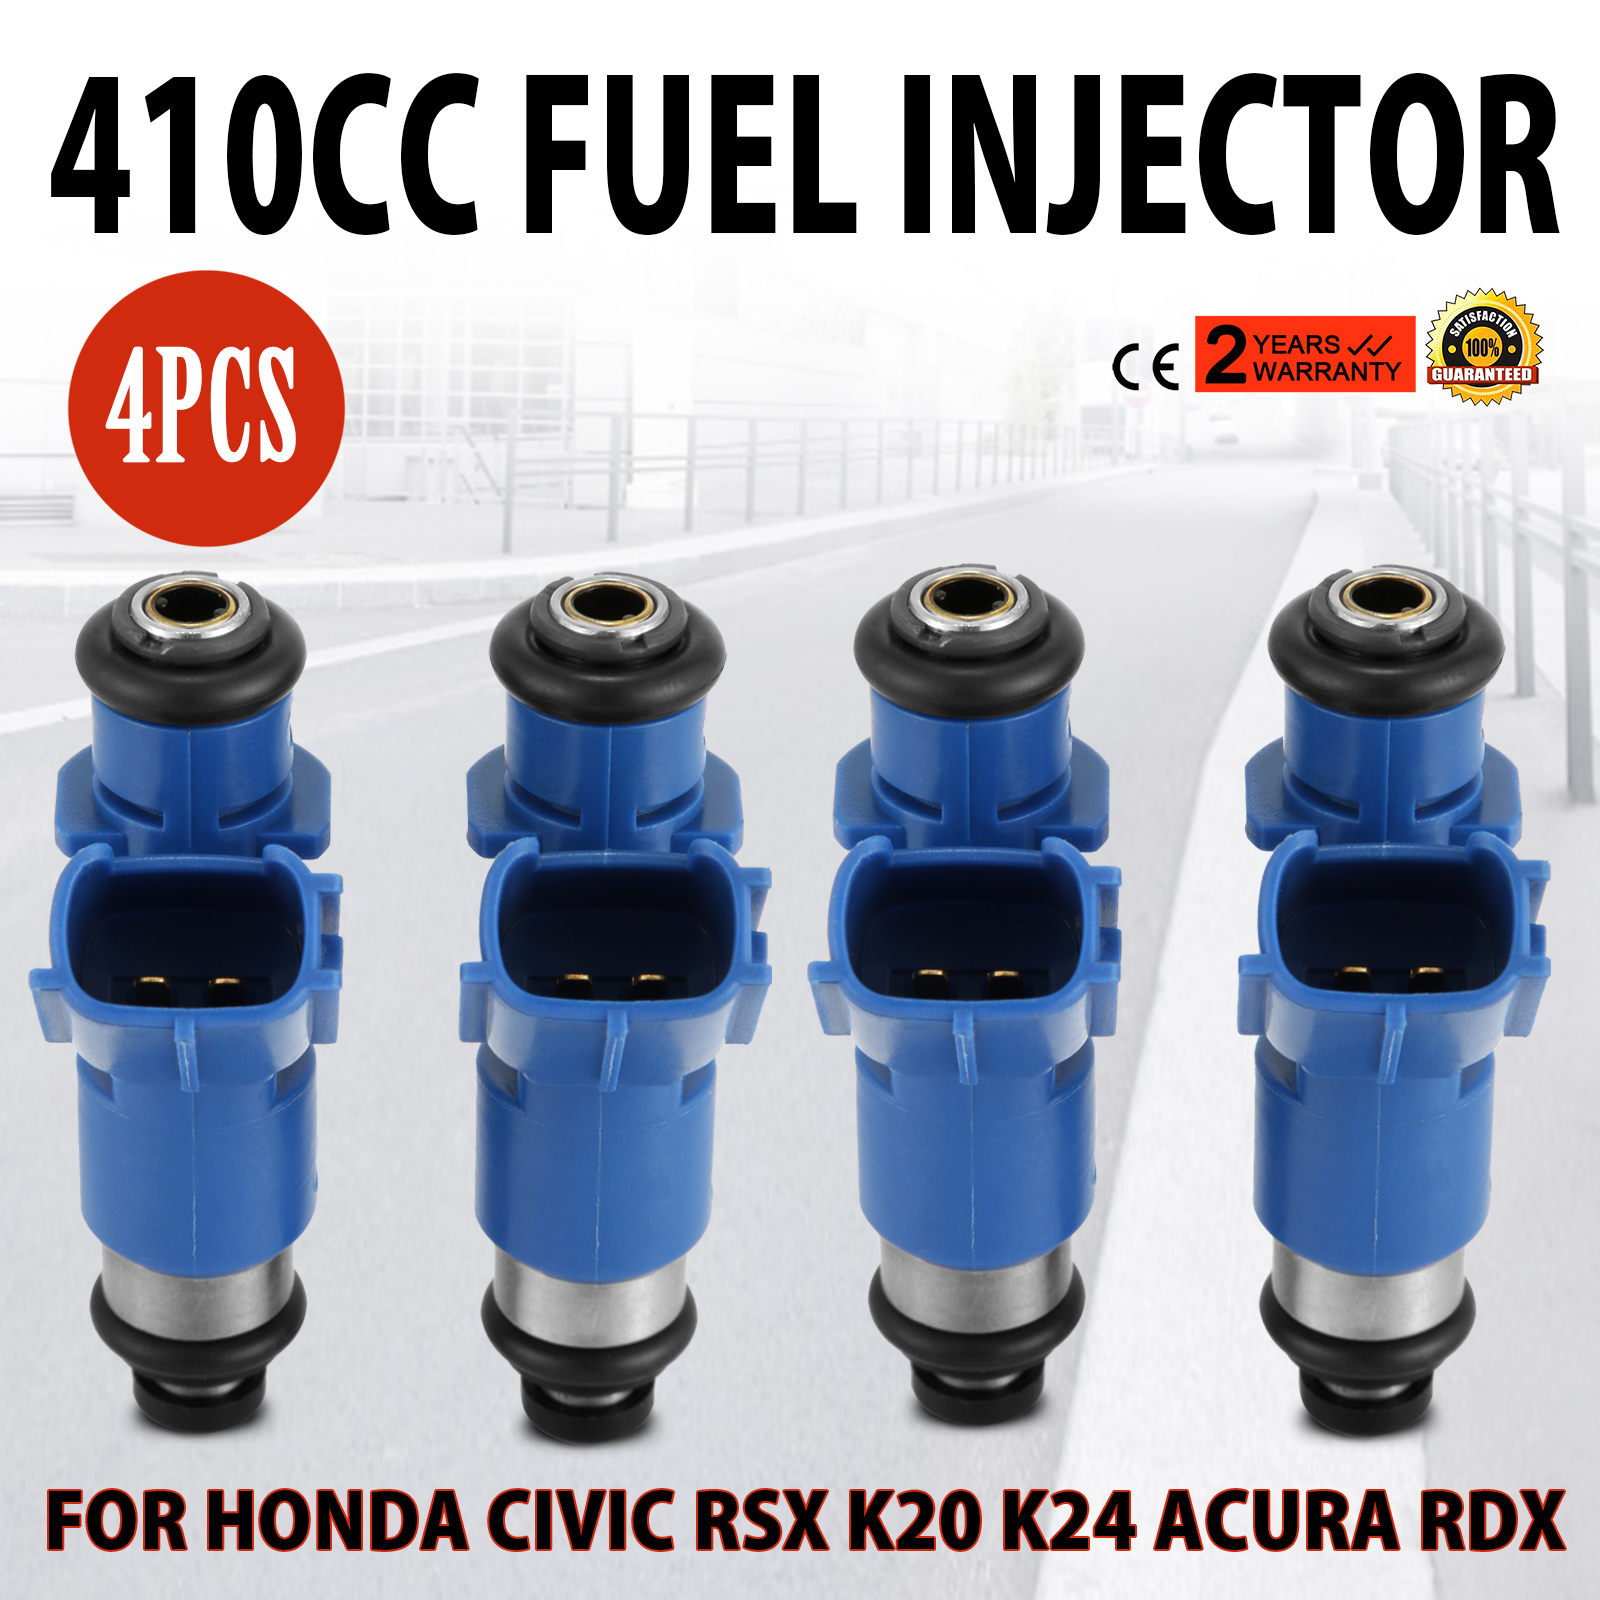 For Acura OEM RDX Denso 410cc Injector KIT SET Honda civic Integra RSX K20 K24